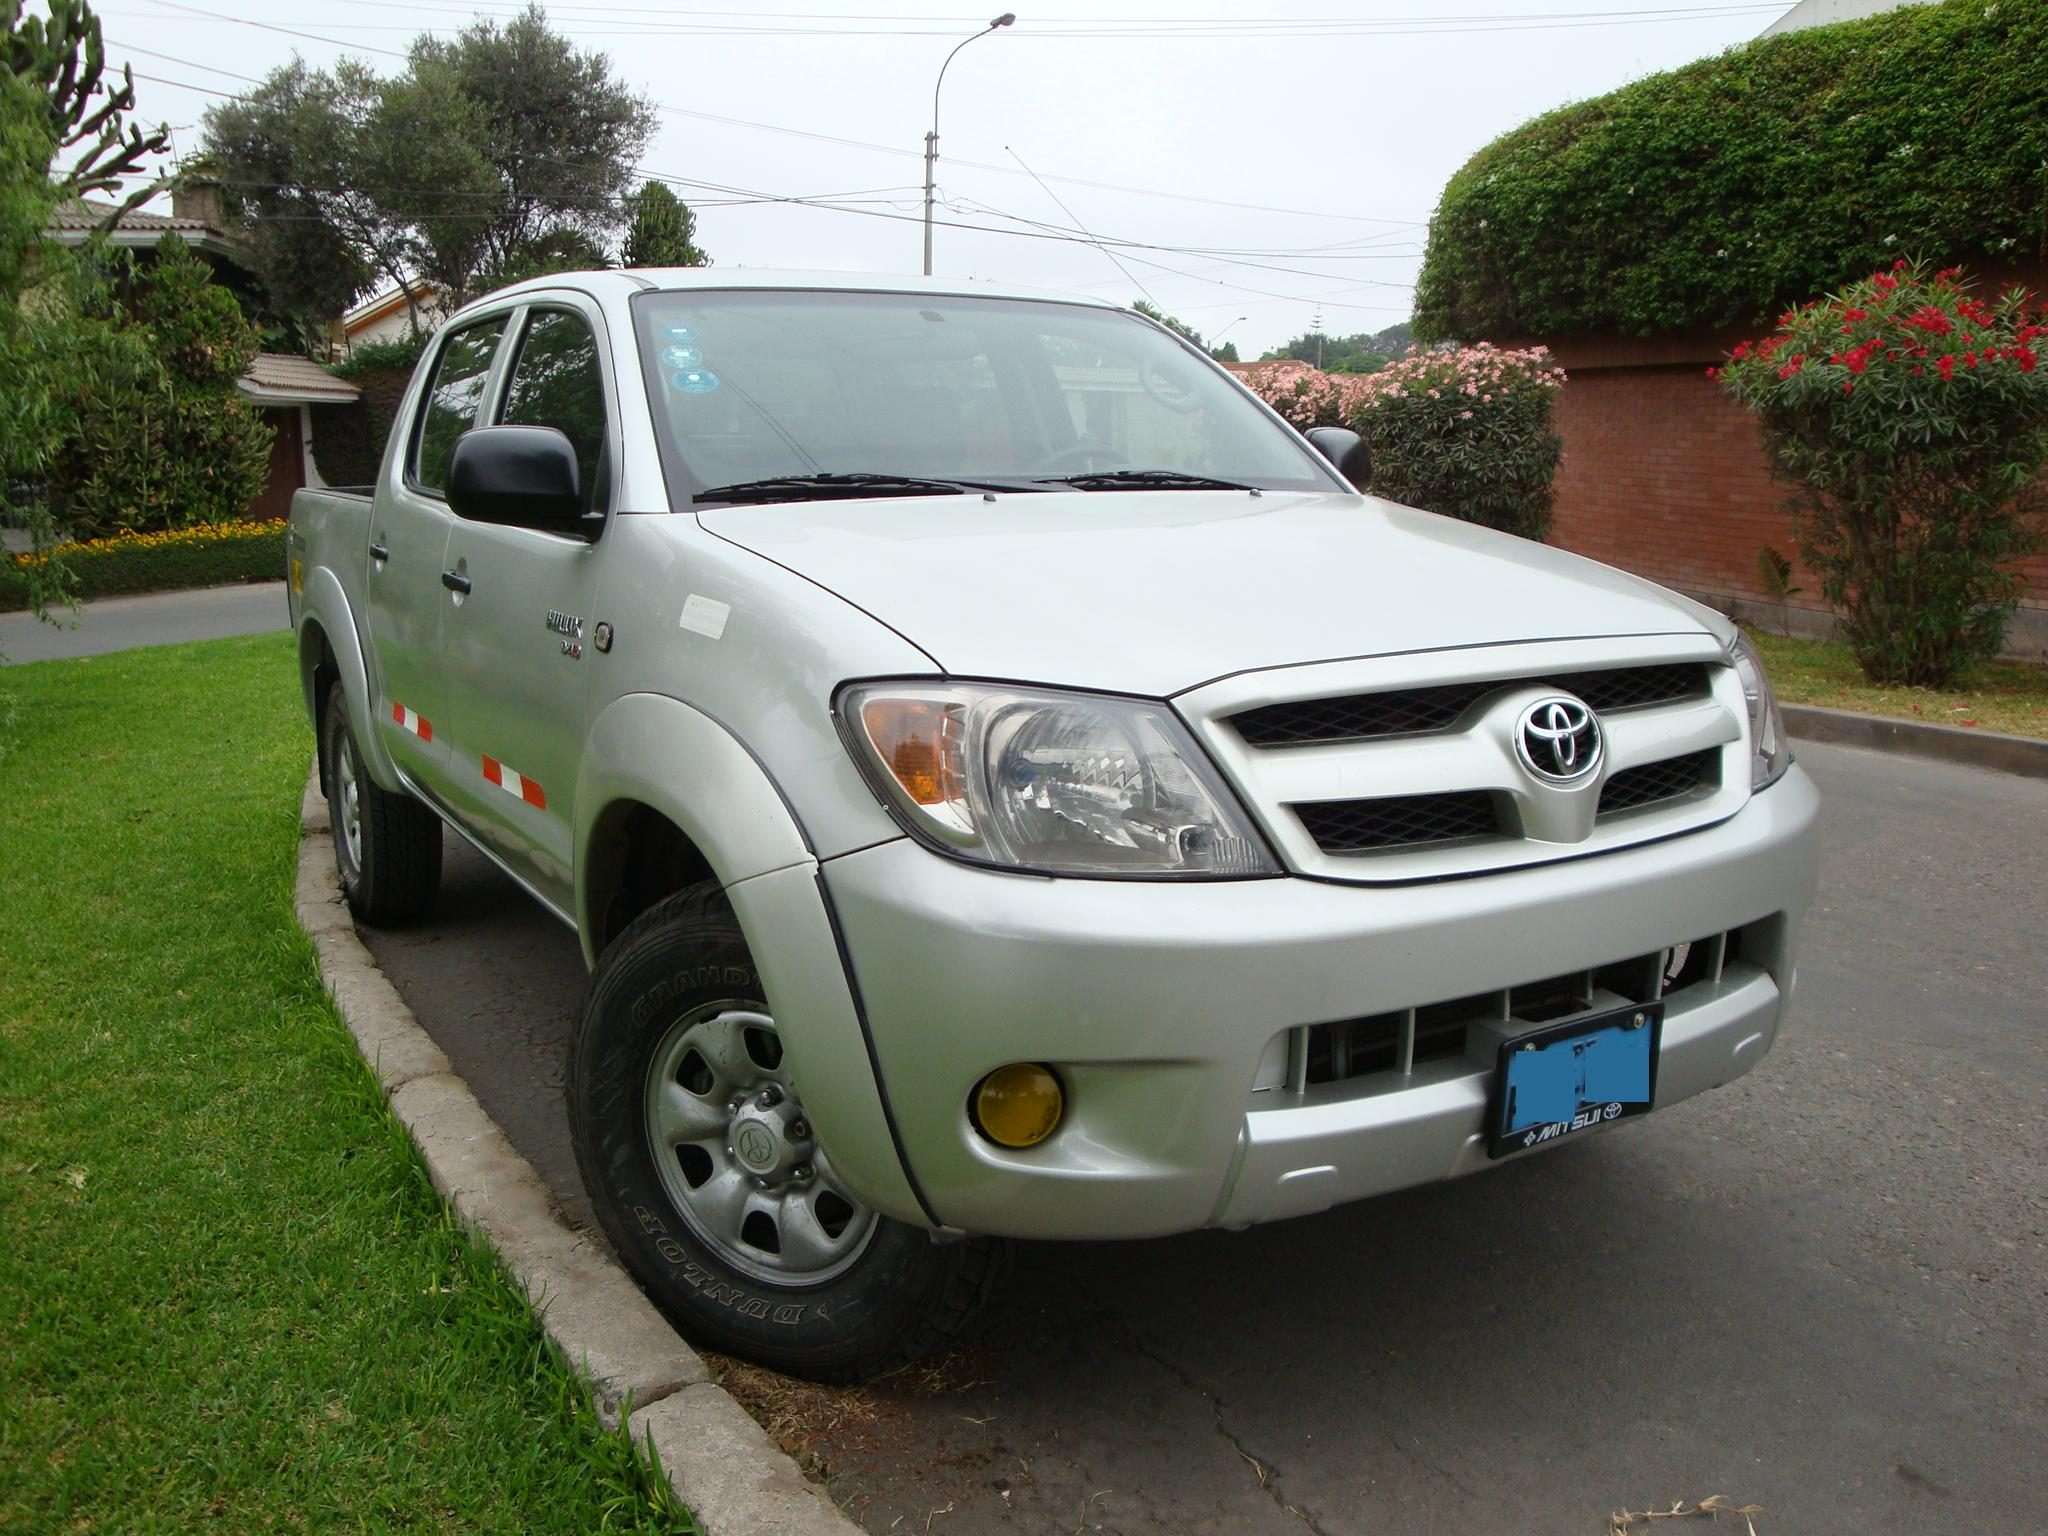 Toyota Hilux 2.5 2006 photo - 1